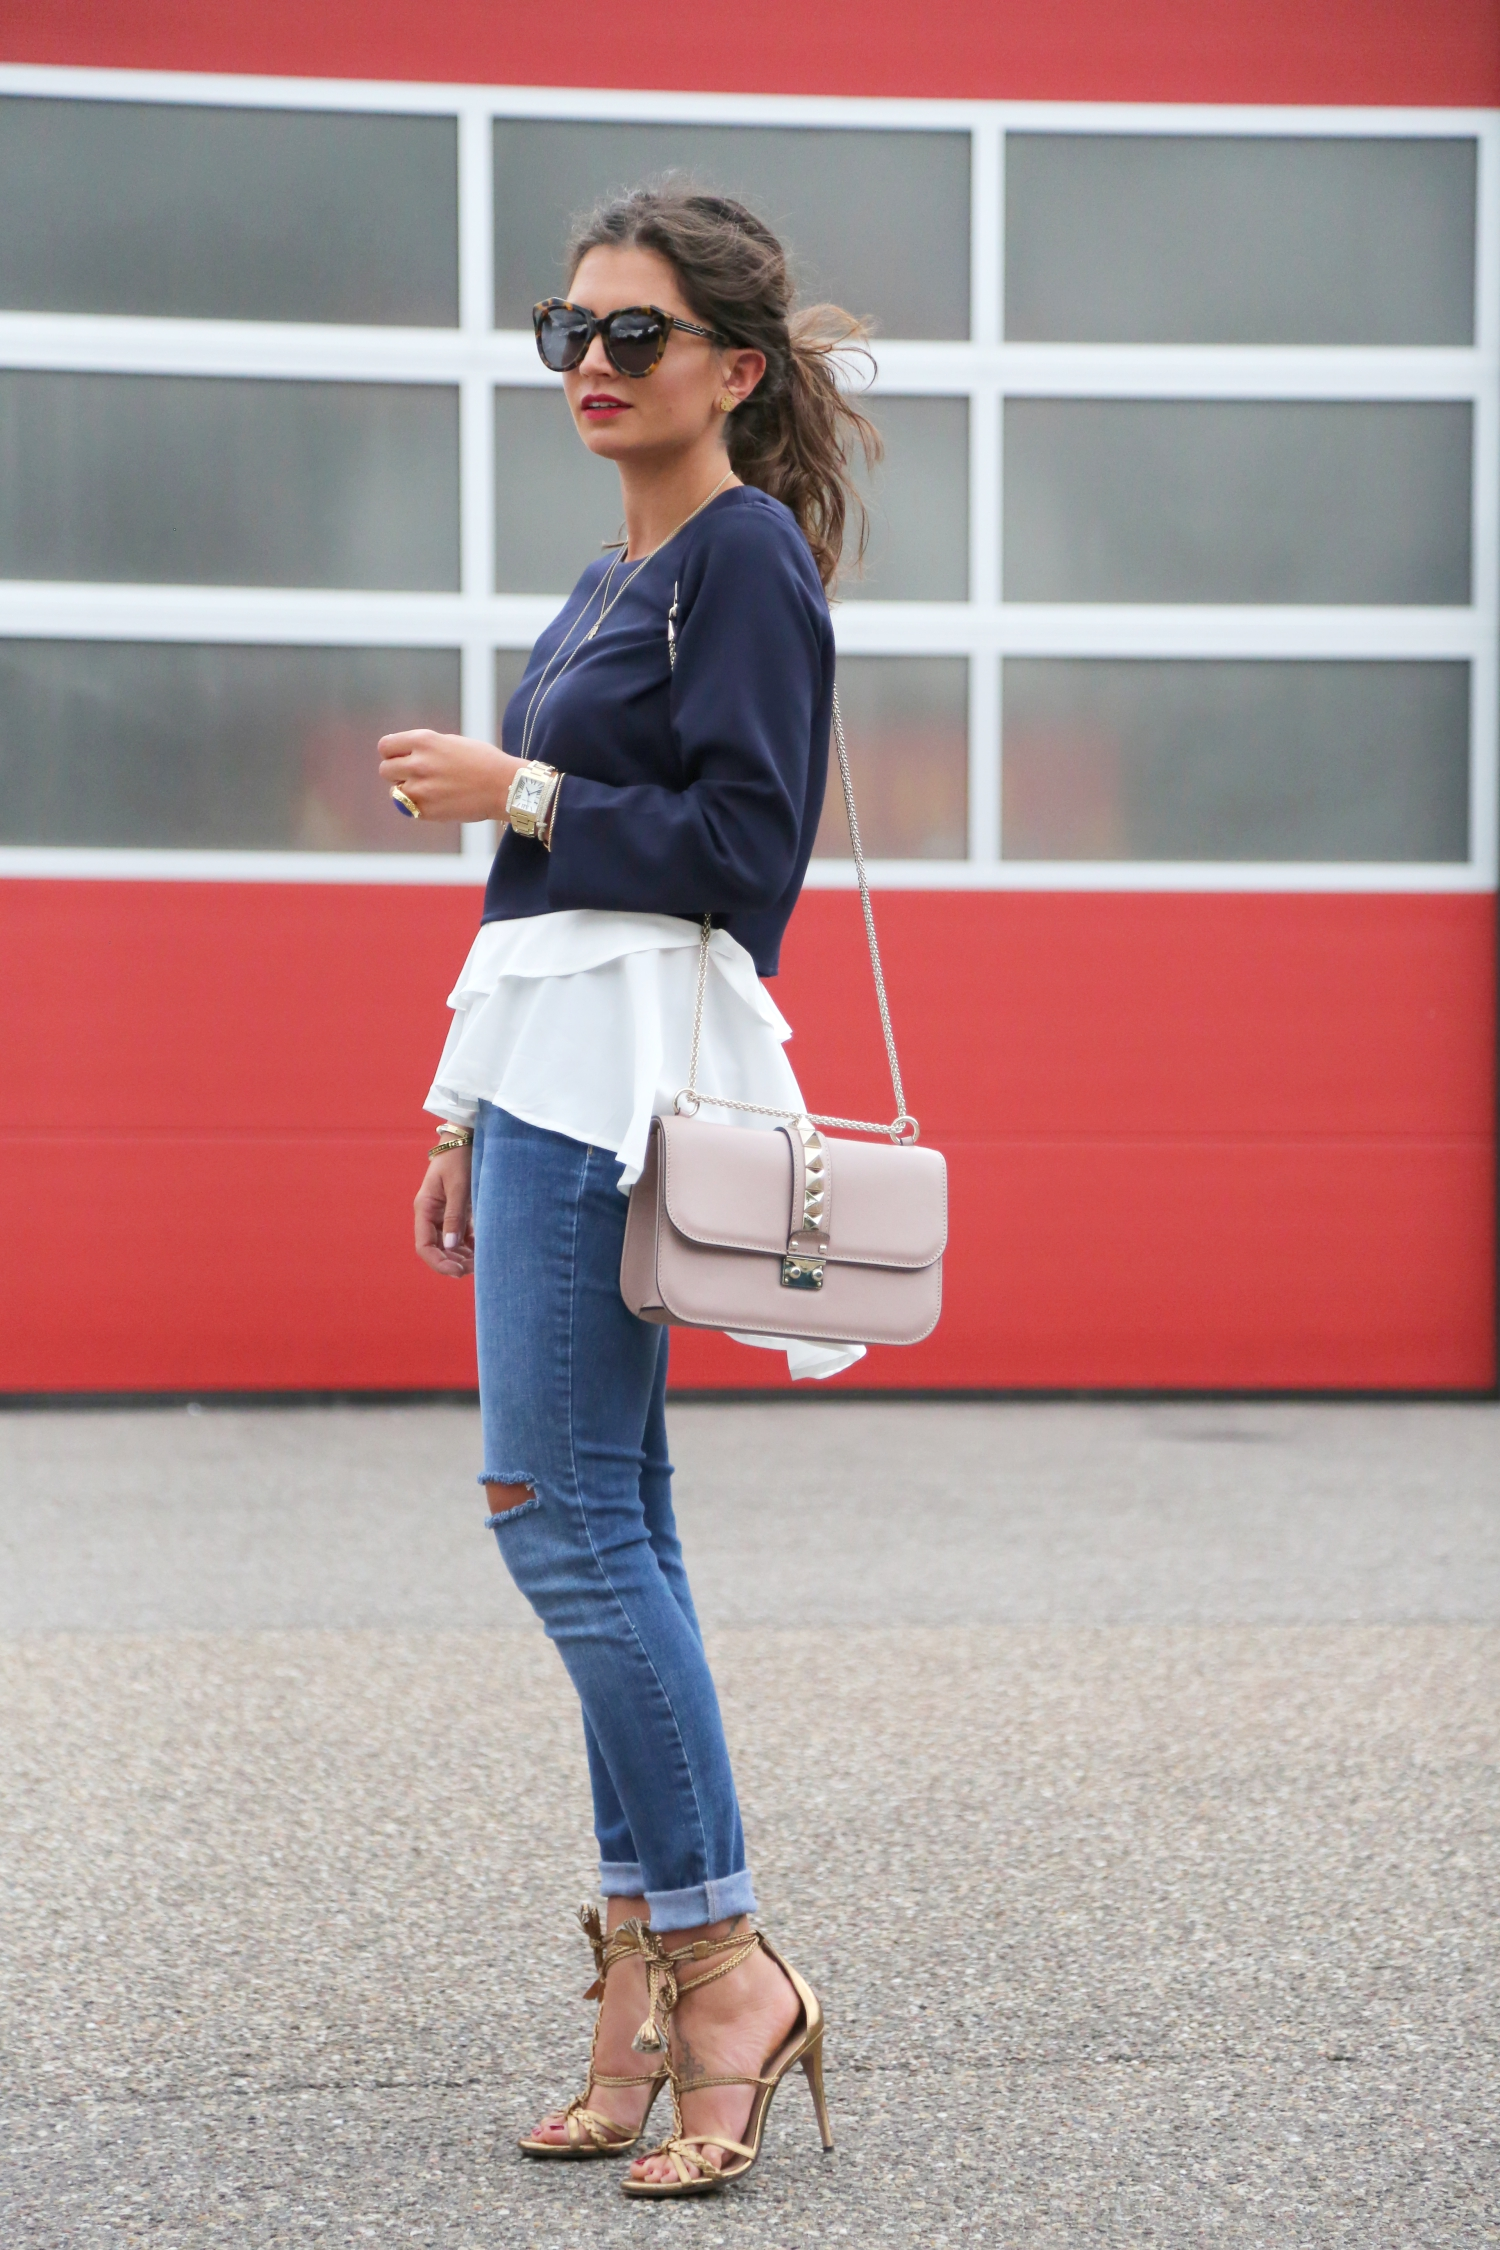 nikkie-look-ripped-jeans-blue-blouse-fashionhippieloves-glam-lock-bag